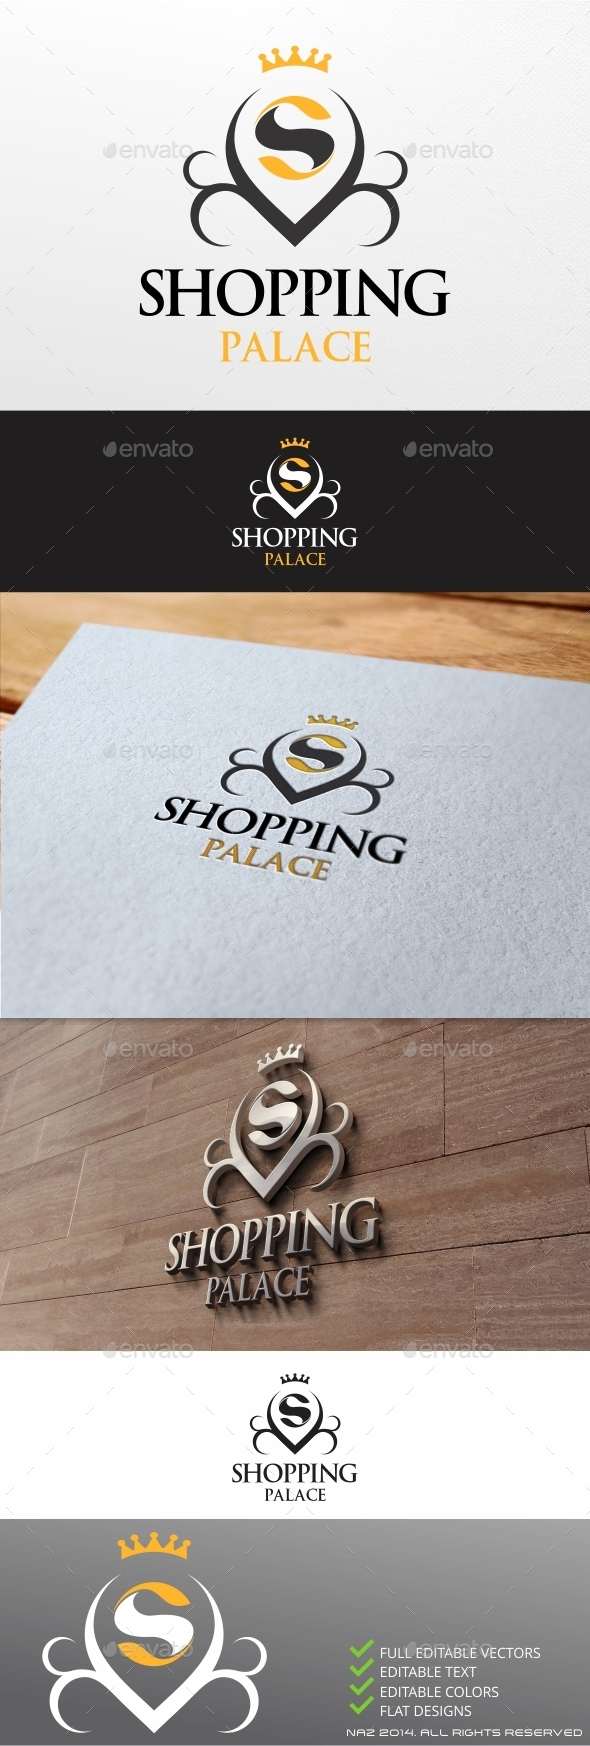 Shopping Palace  - Letters Logo Templates